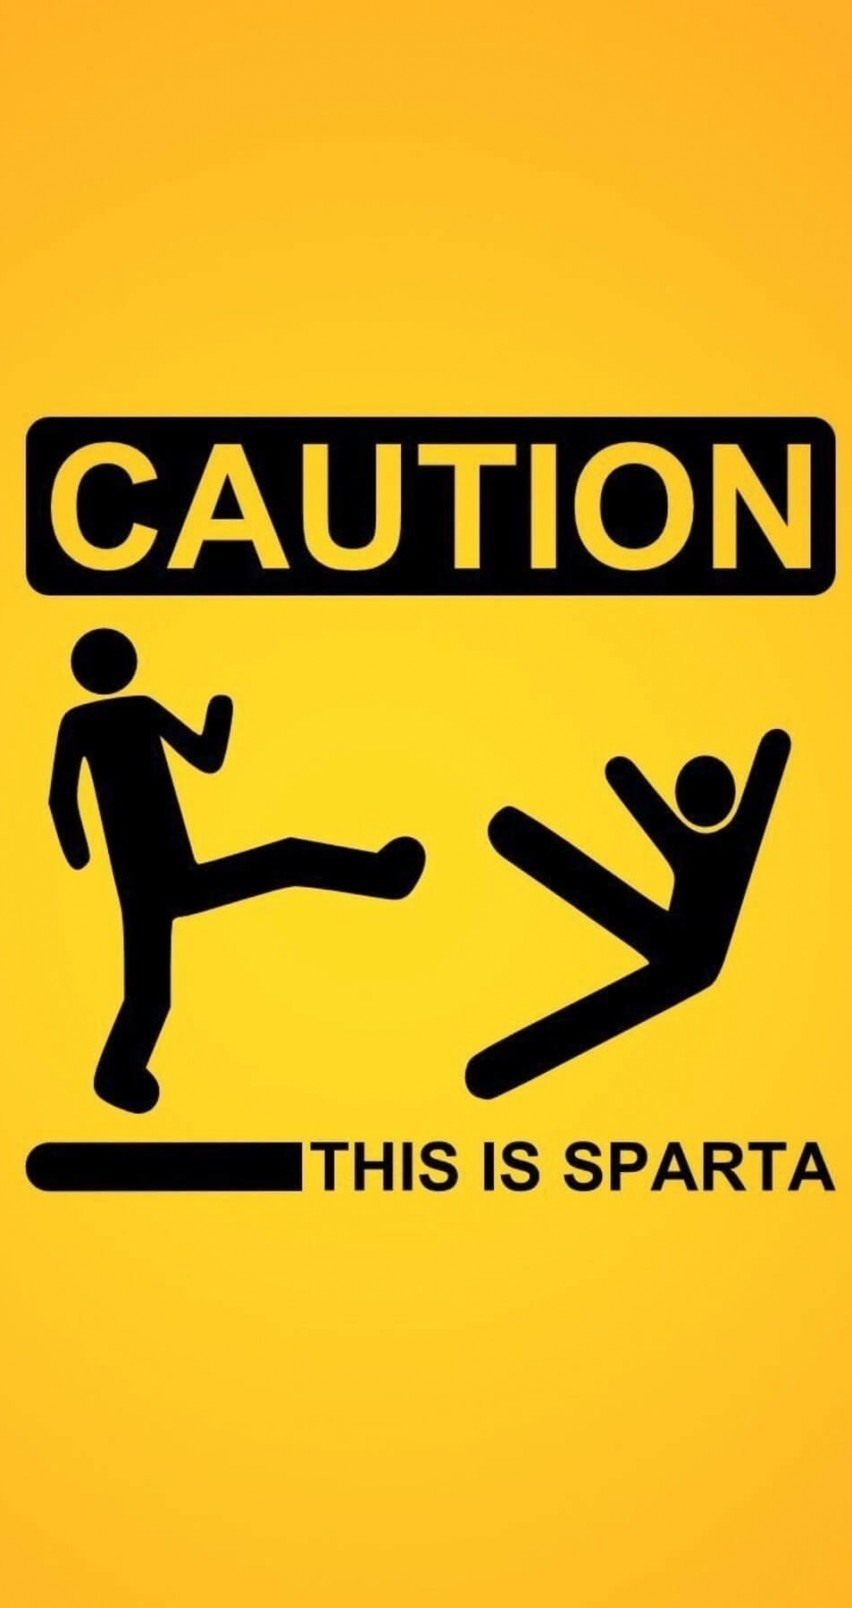 Caution: This Is Sparta! Wallpaper for Apple iPhone 6 / 6s